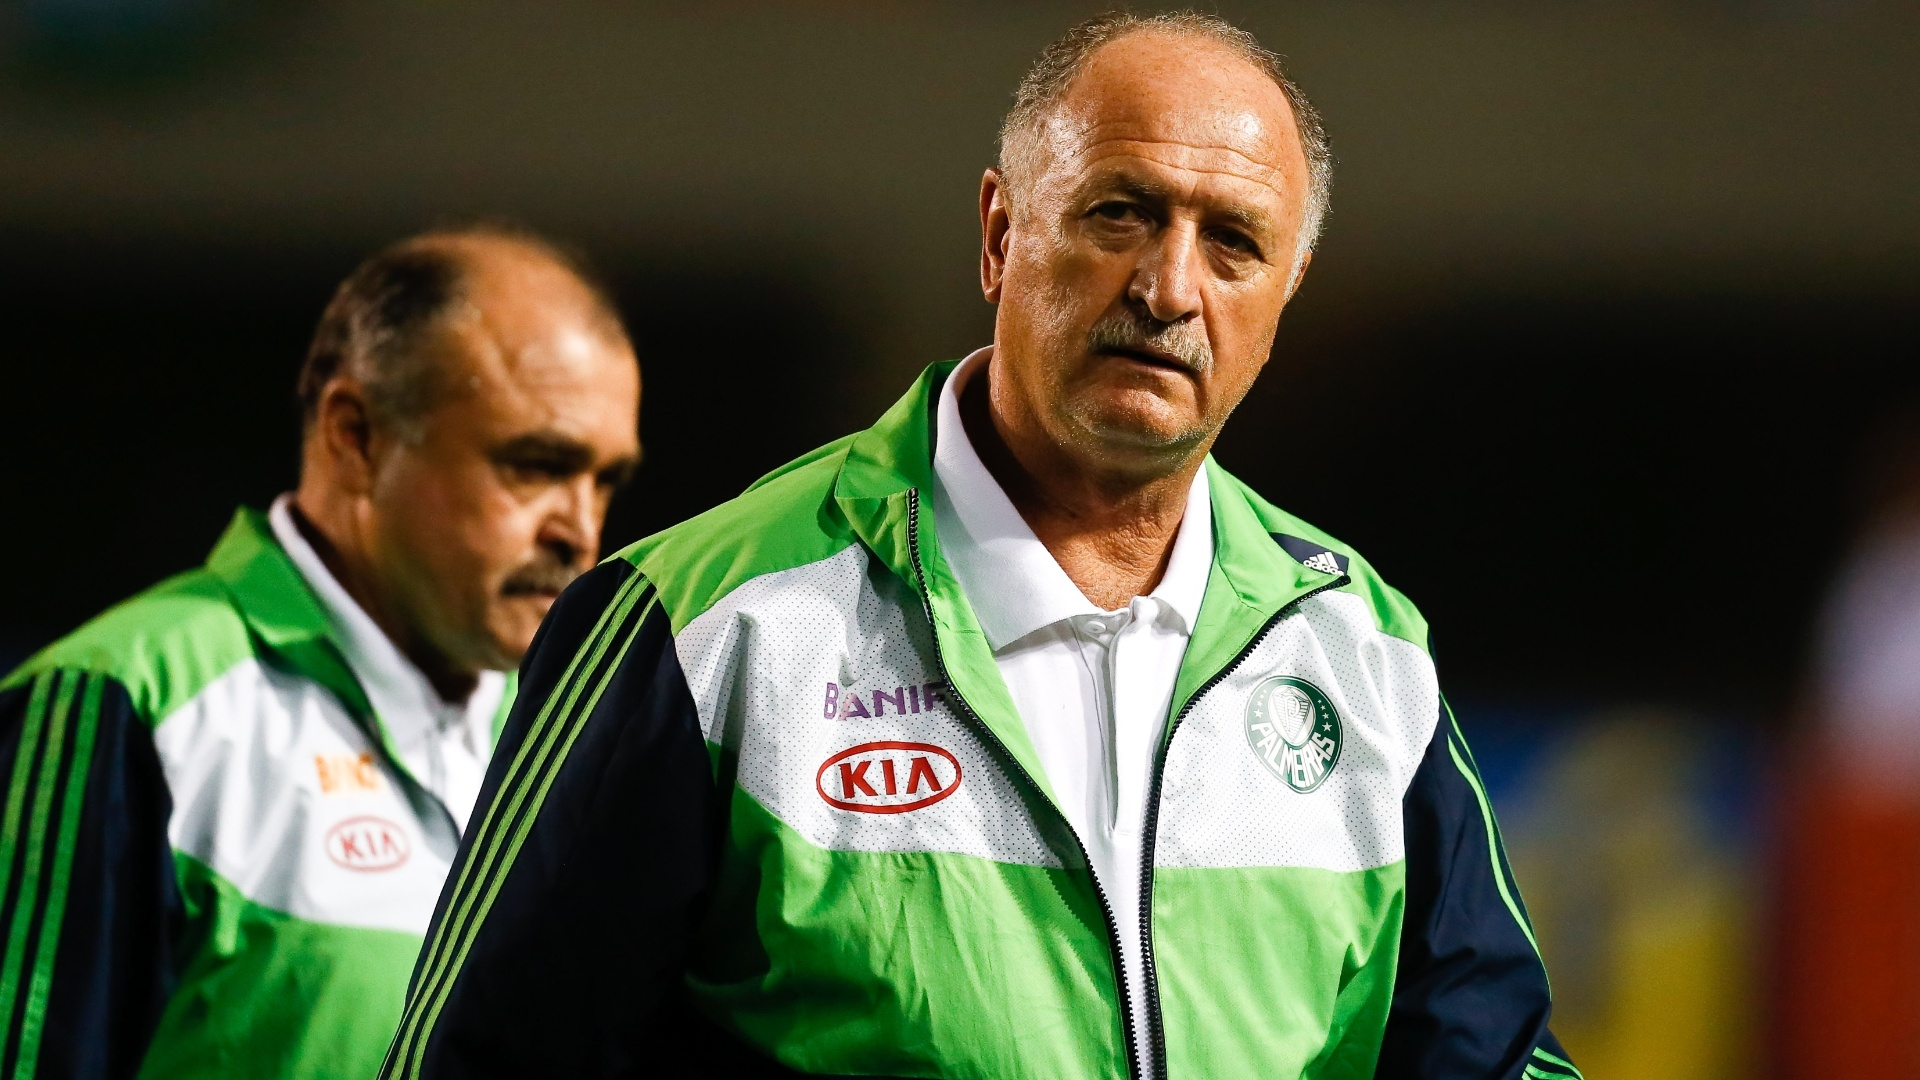 Luiz Felipe Scolari e seu auxiliar, Flvio Murtosa